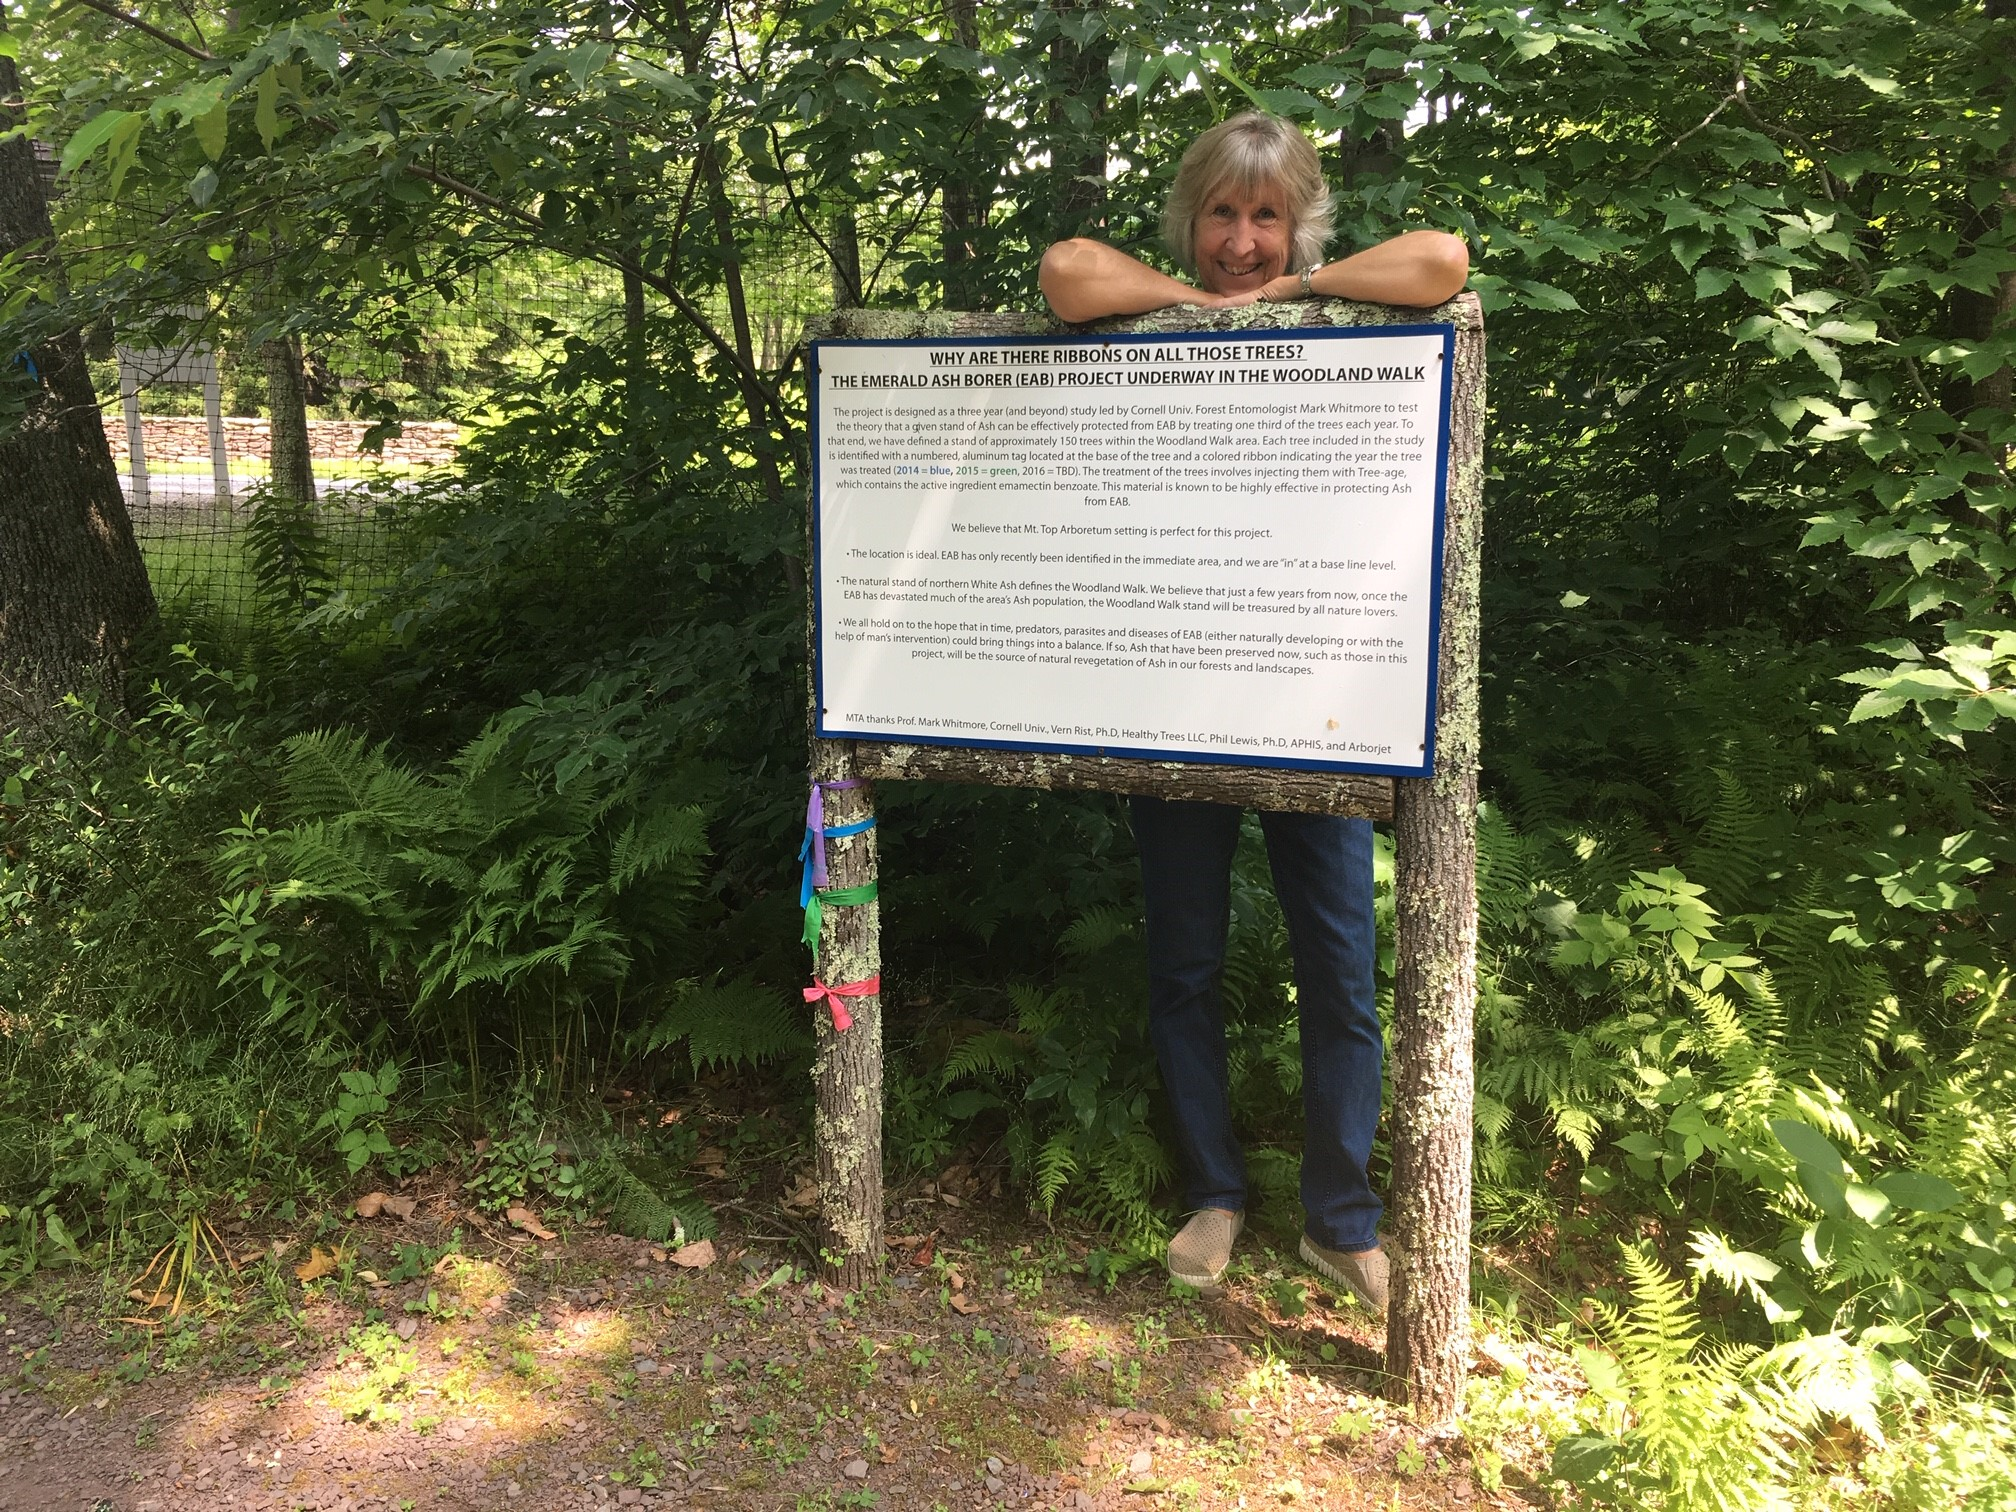 Debbie stands behind the sign for the Emerald Ash Borer Project in the Woodland Walk, an effort she has been helping with since 2014.